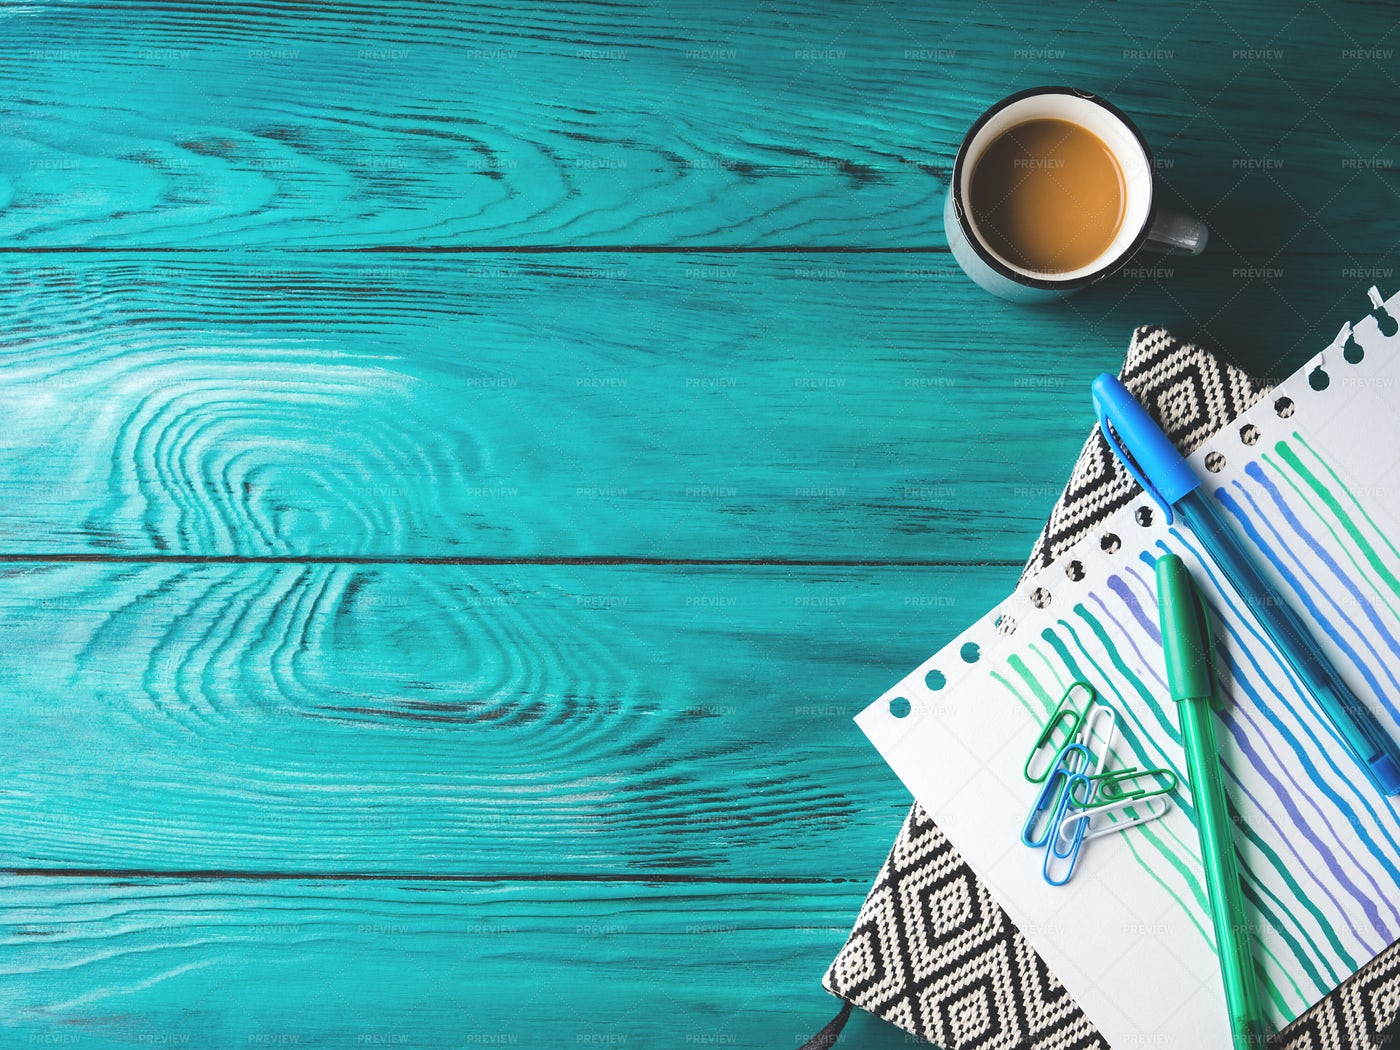 Coffee And Stationery On Desk: Stock Photos